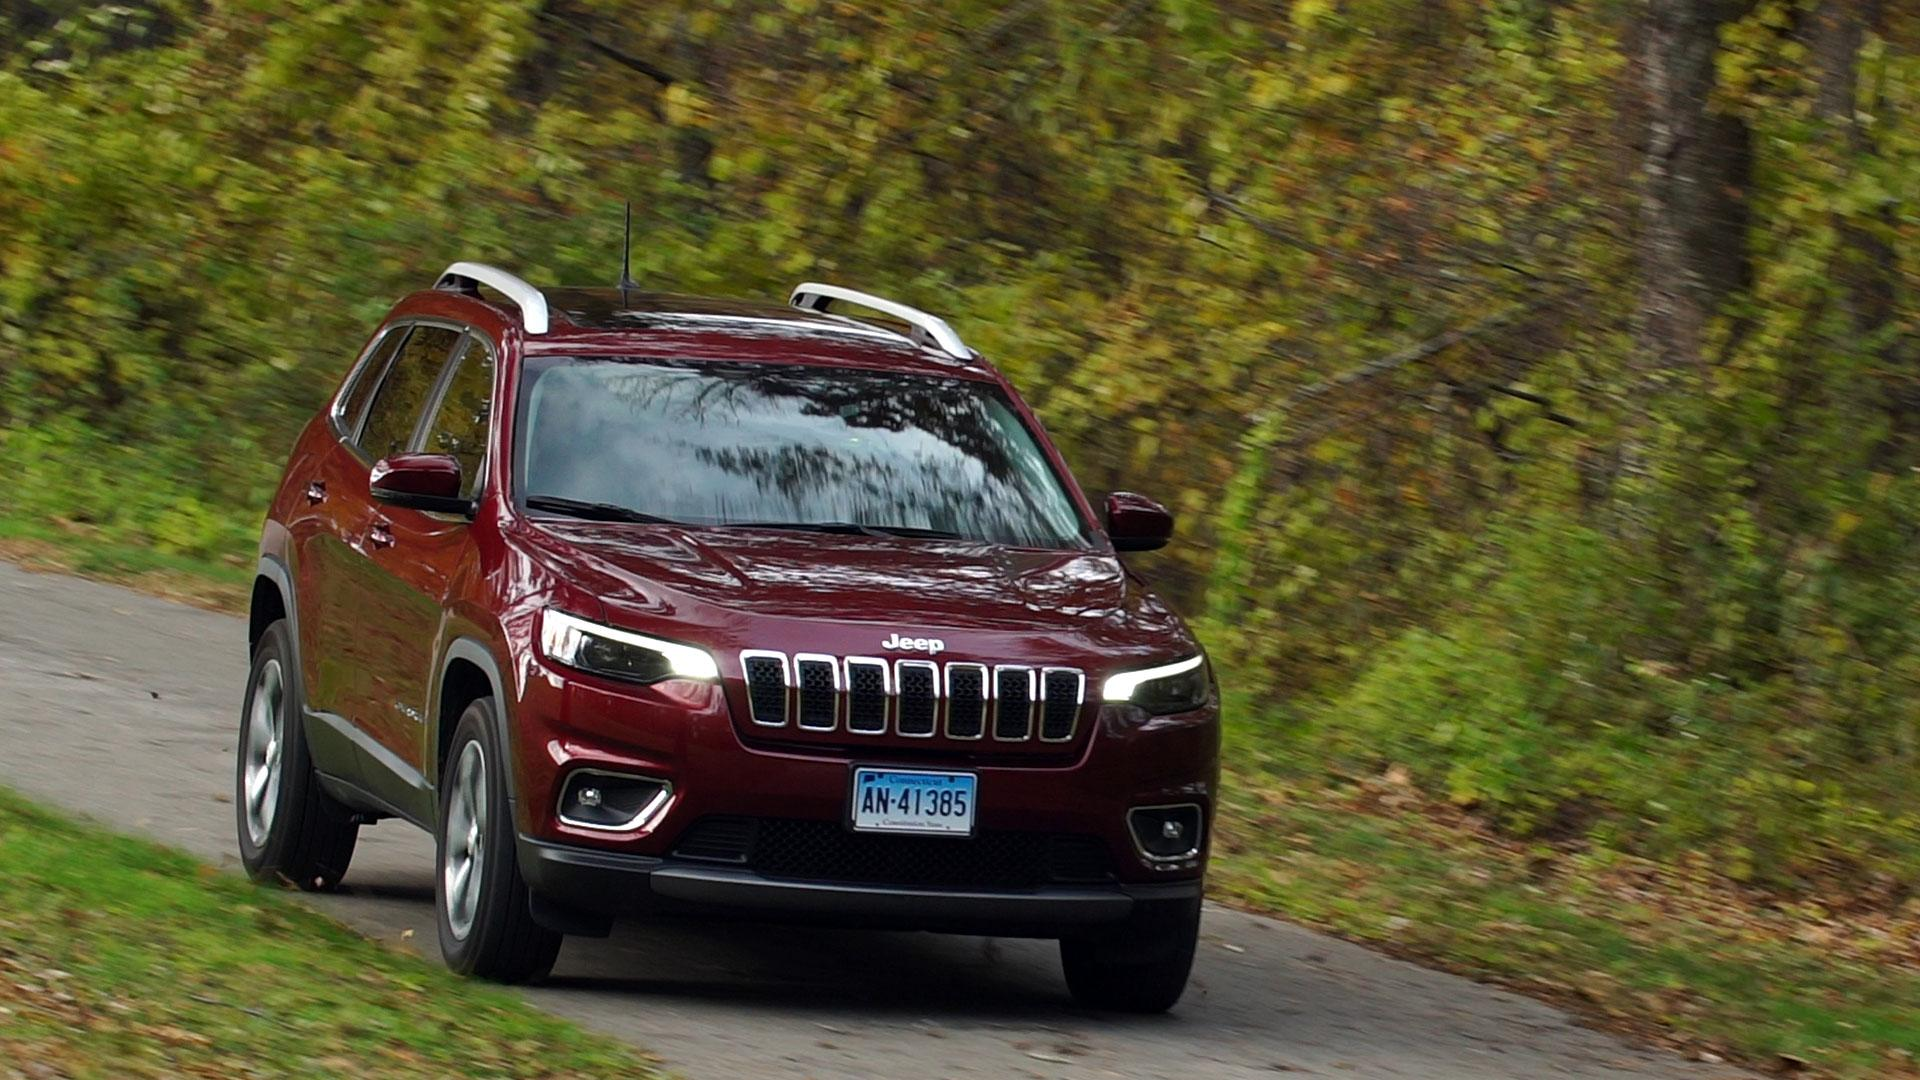 2019 Jeep Cherokee Adds Turbo Consumer Reports